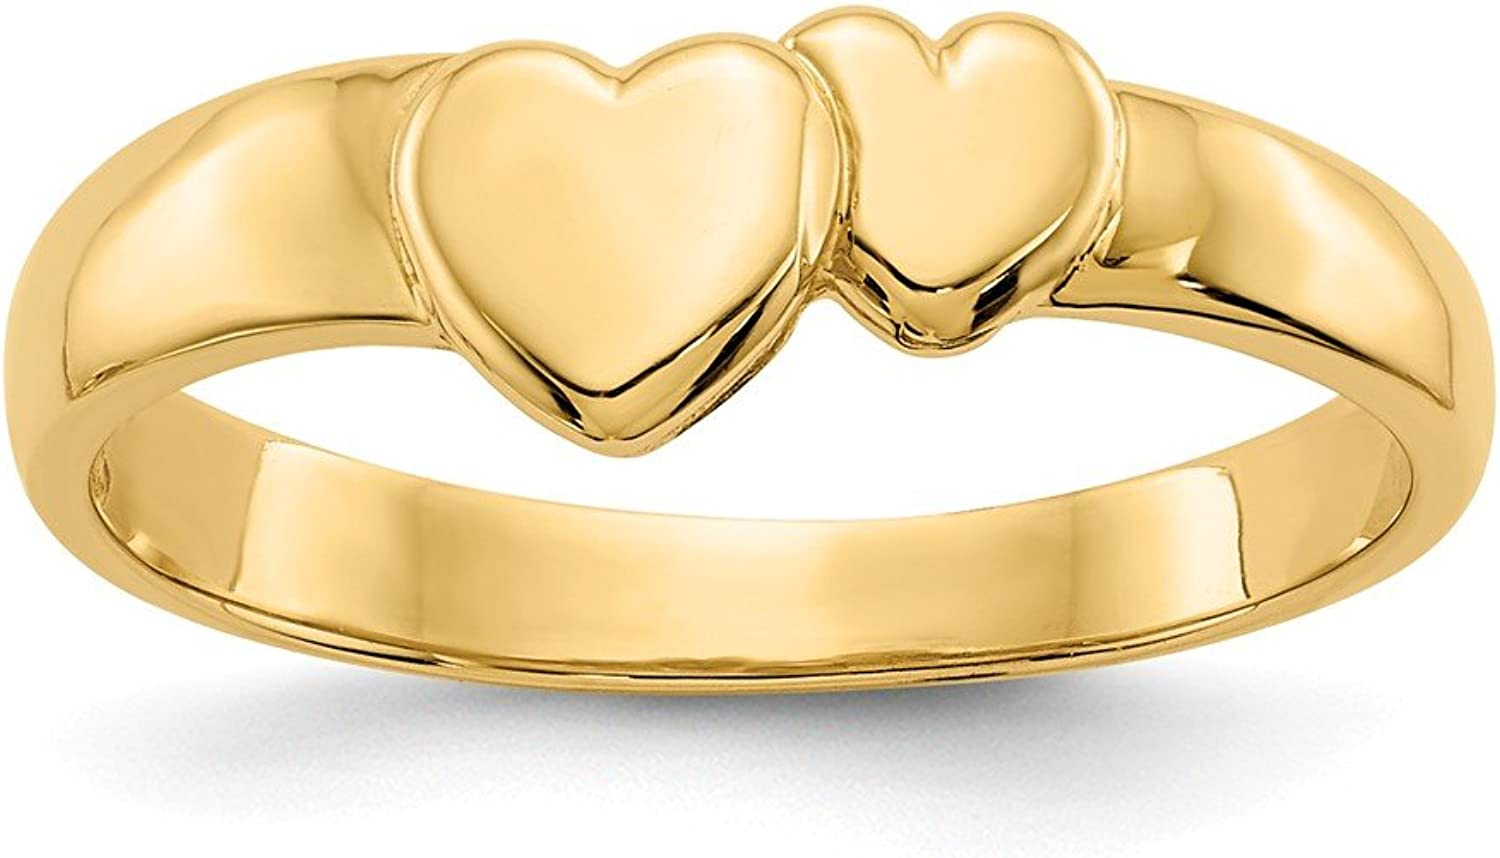 14k Yellow gold gold Hearts Ring for Women Size 6.25